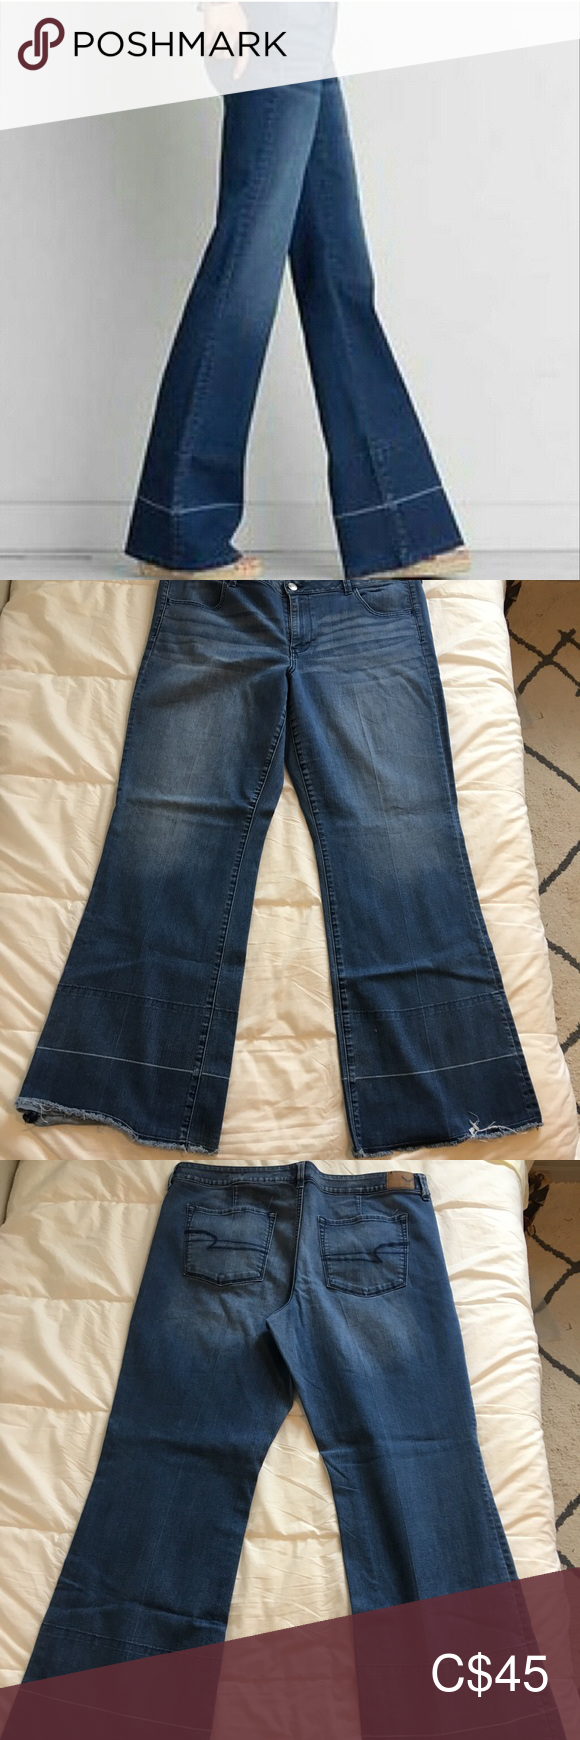 AEO ALine Jeans P264 Lined jeans, American eagle